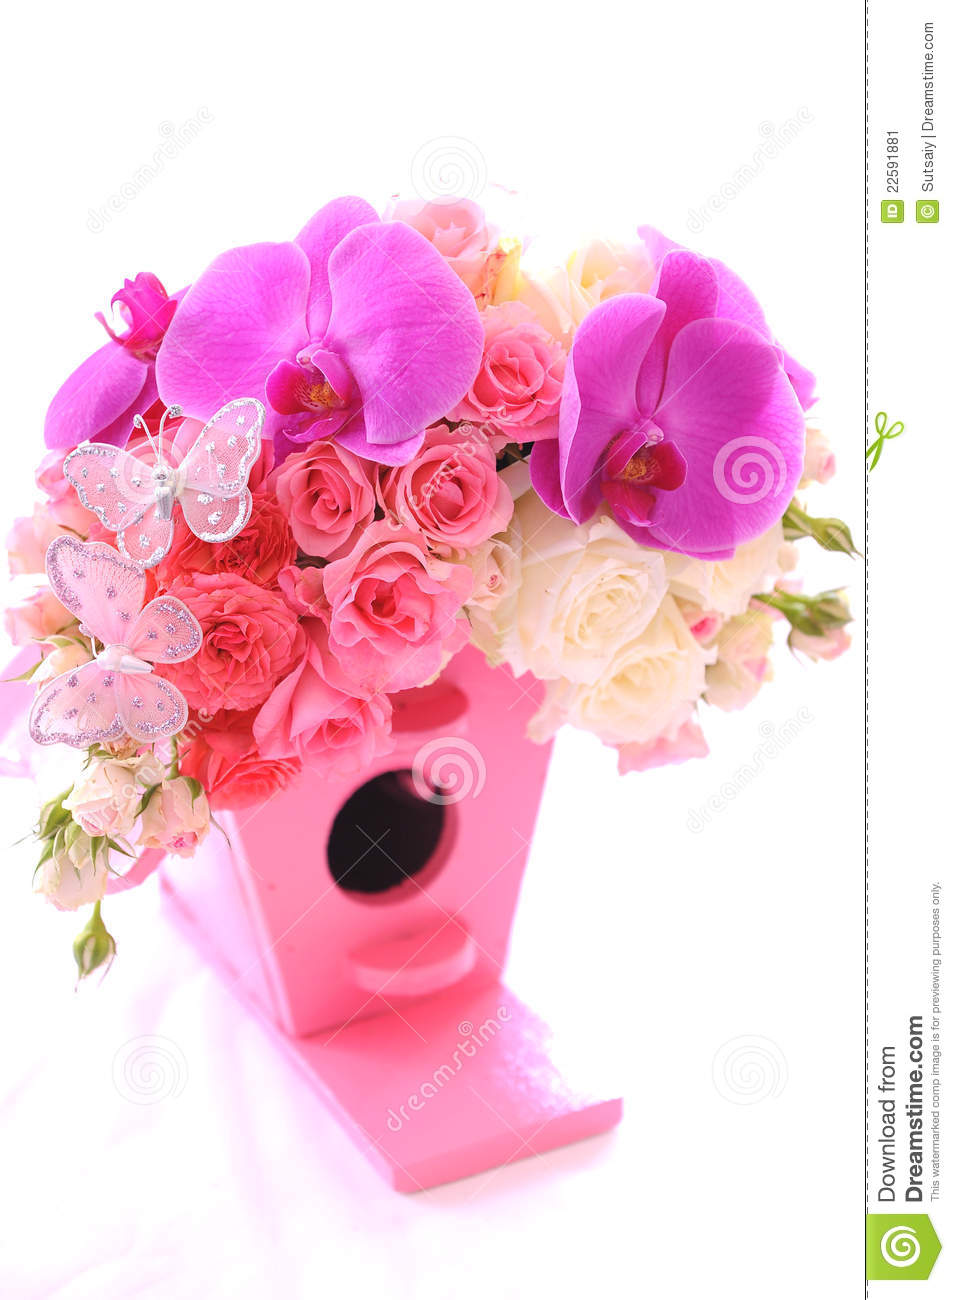 Bouquet Of Beautiful Flowers Stock Image - Image of crimson ...